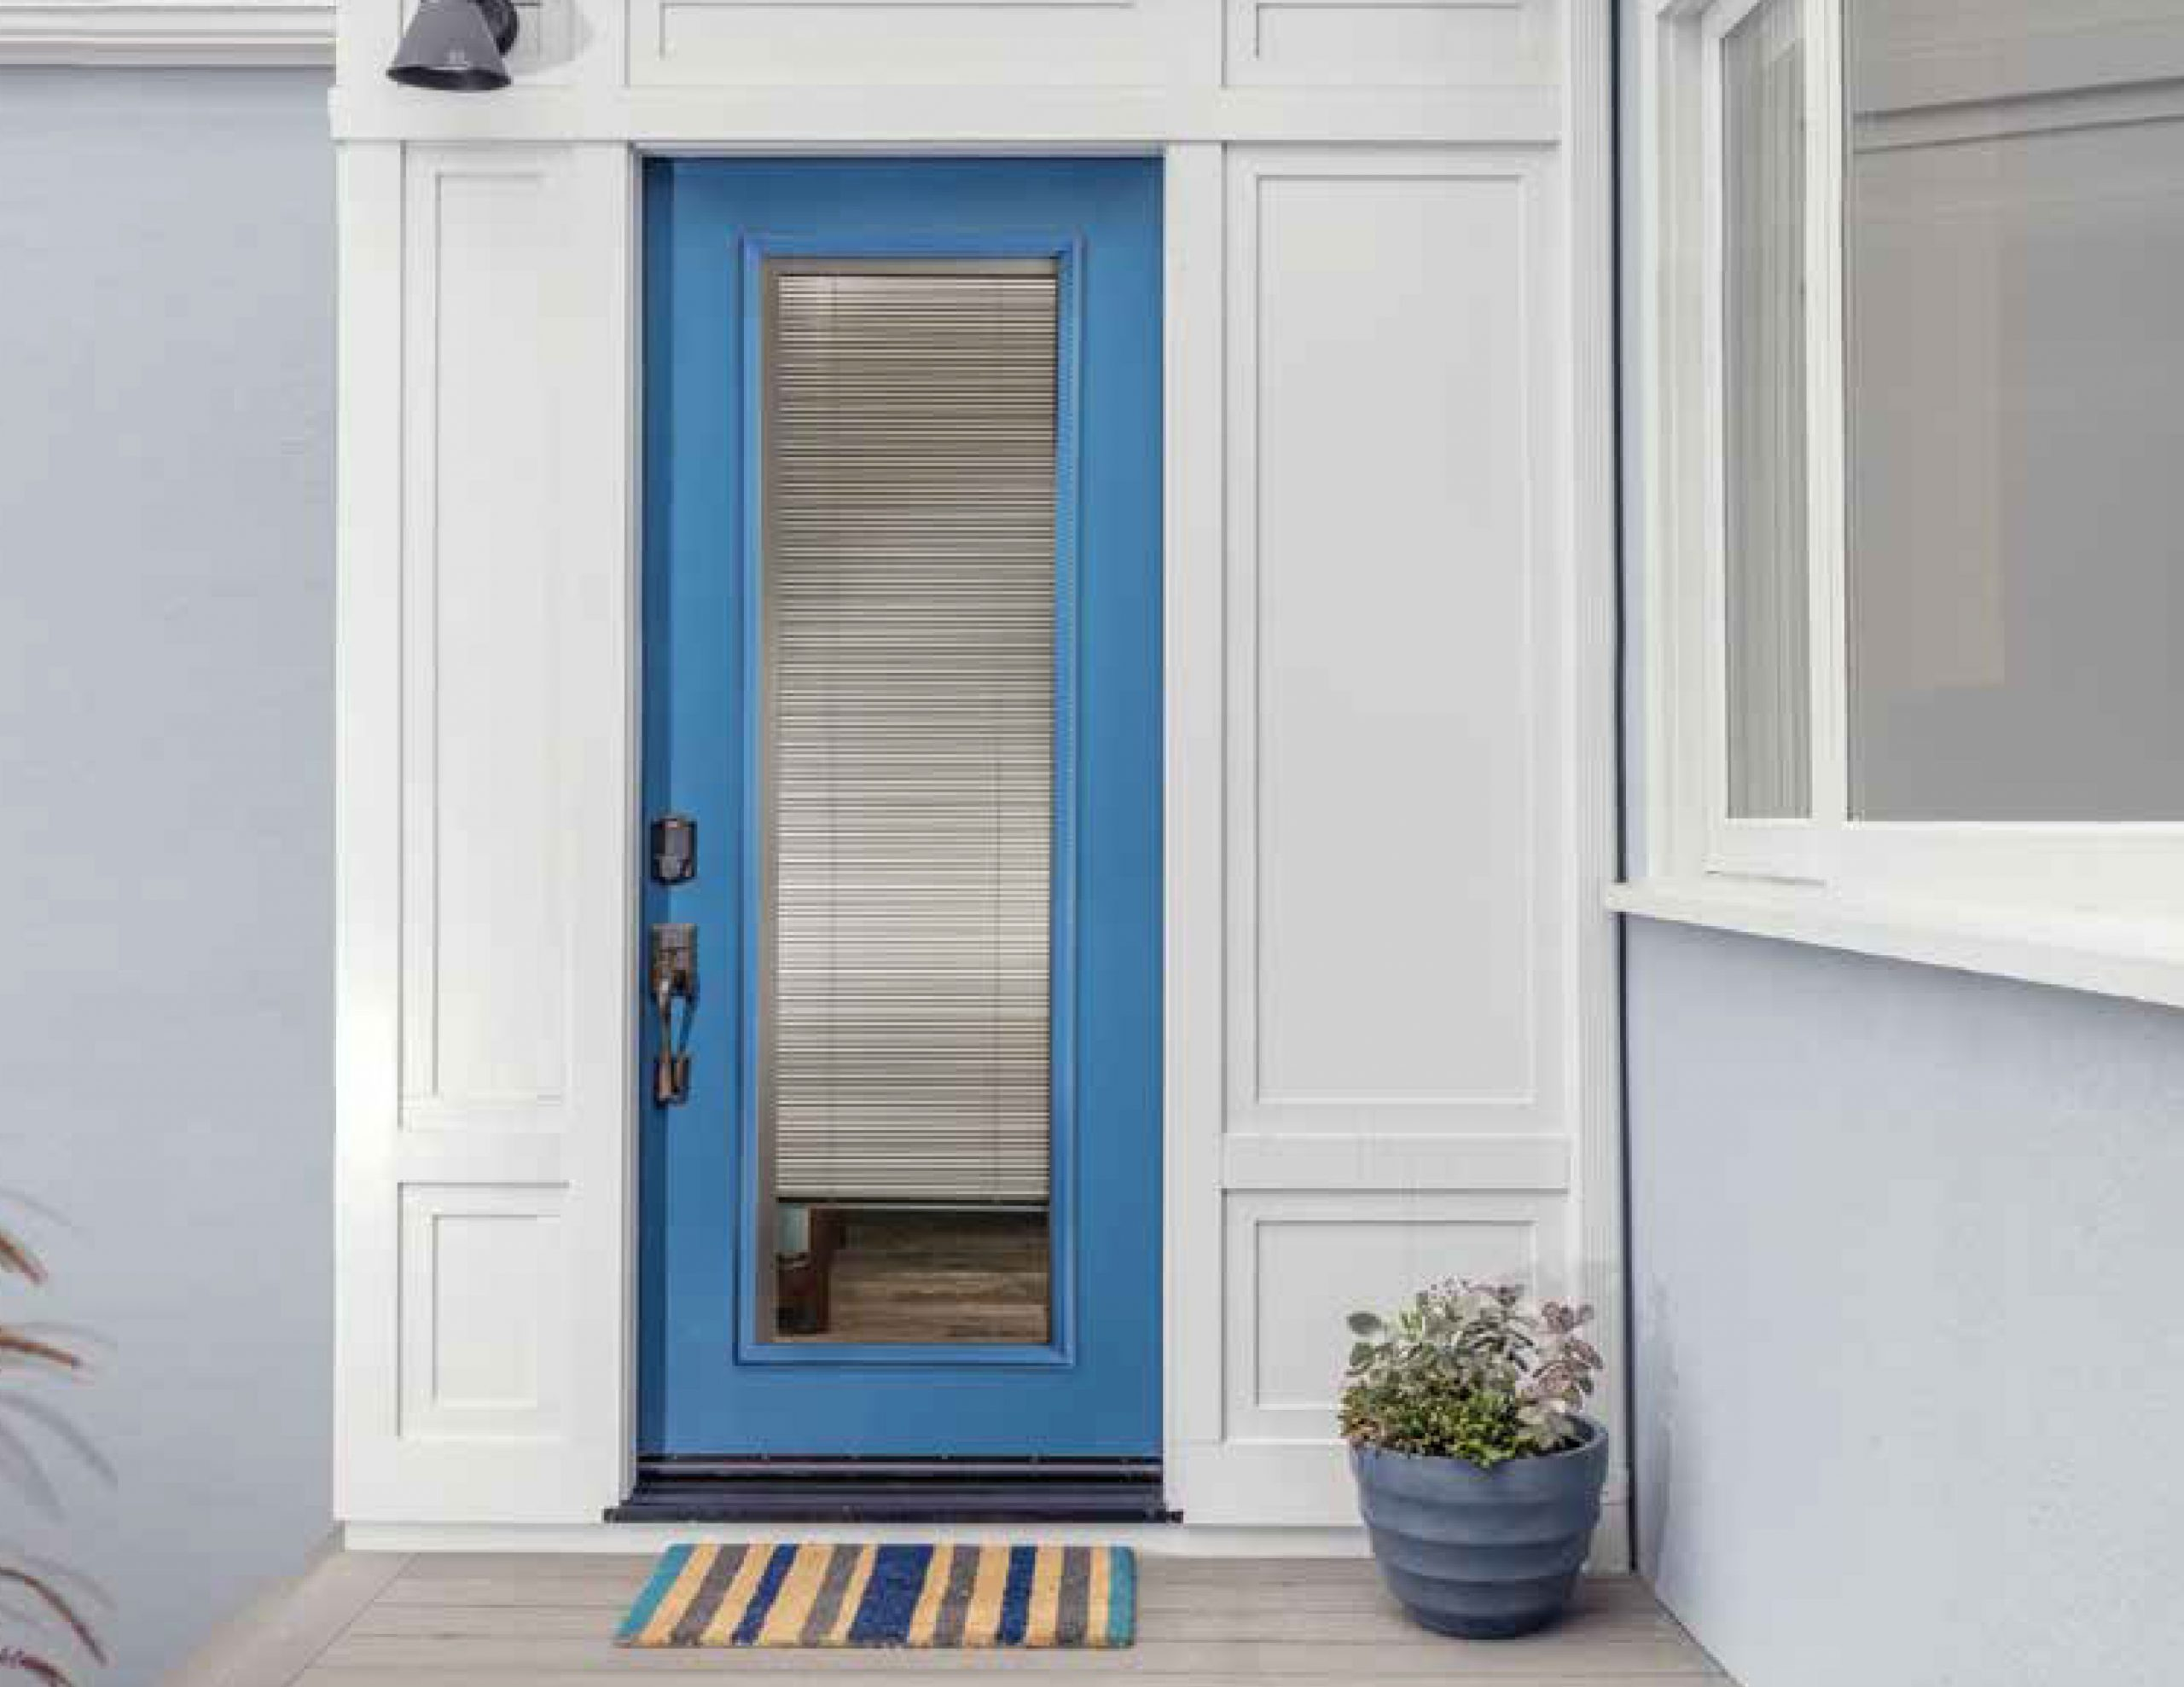 Contemporary Entry Door for Your Home or Business